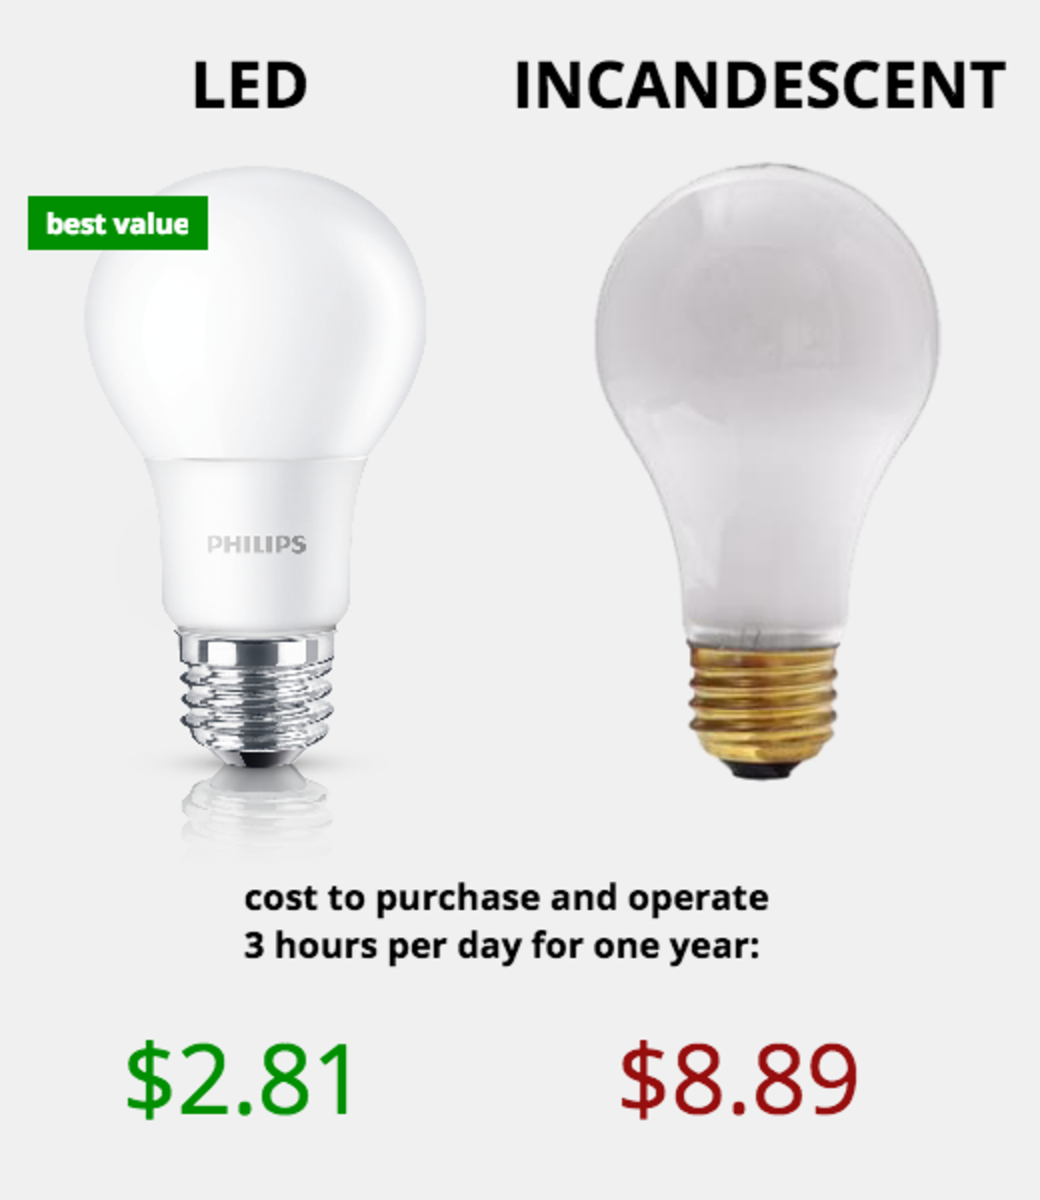 Led vs incandescent light bulbs although they have a slightly higher initial cost led